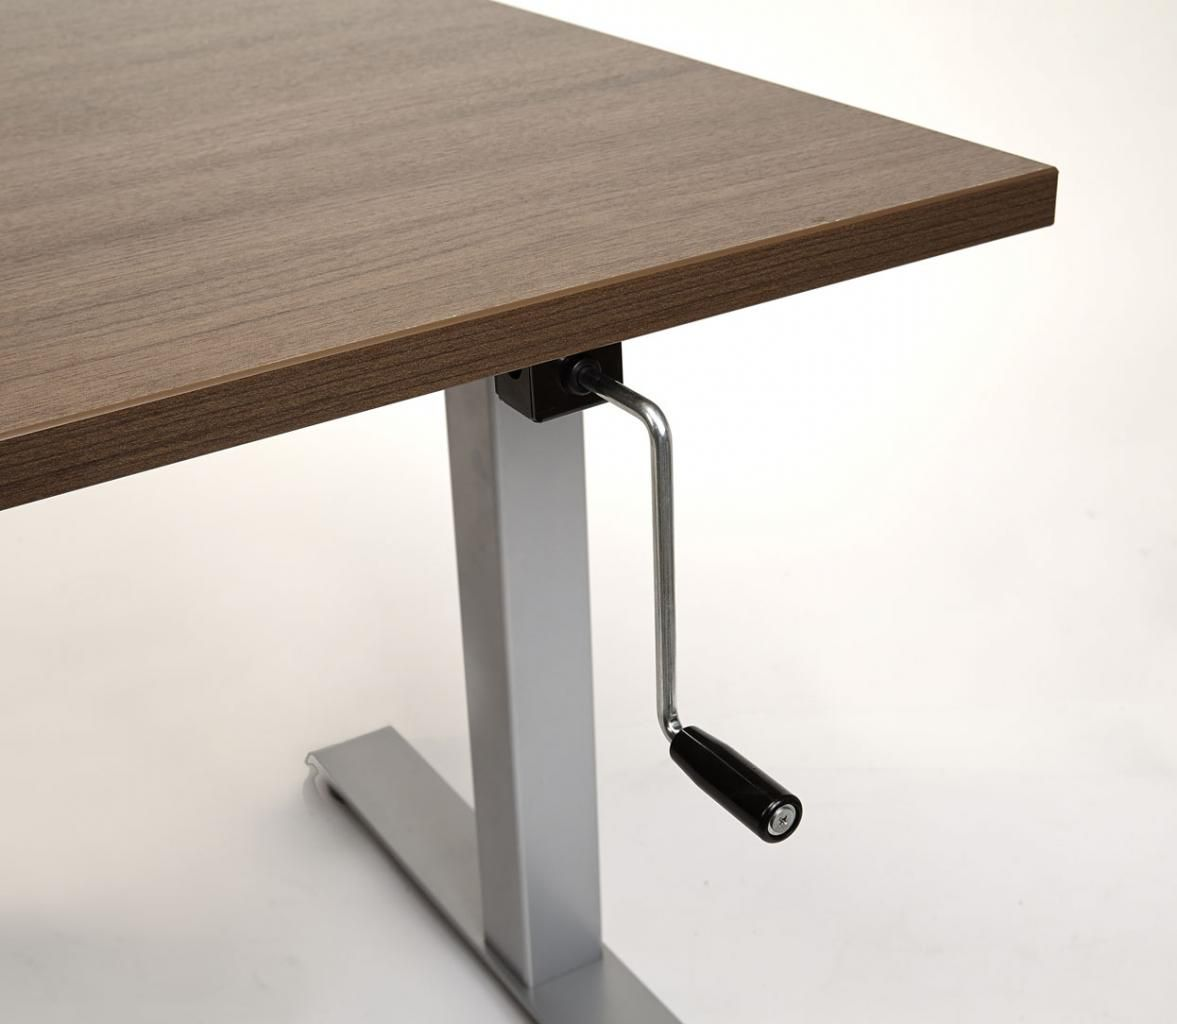 hand crank standing desk standing desk with handcrank adjustment smart and frugal frugal